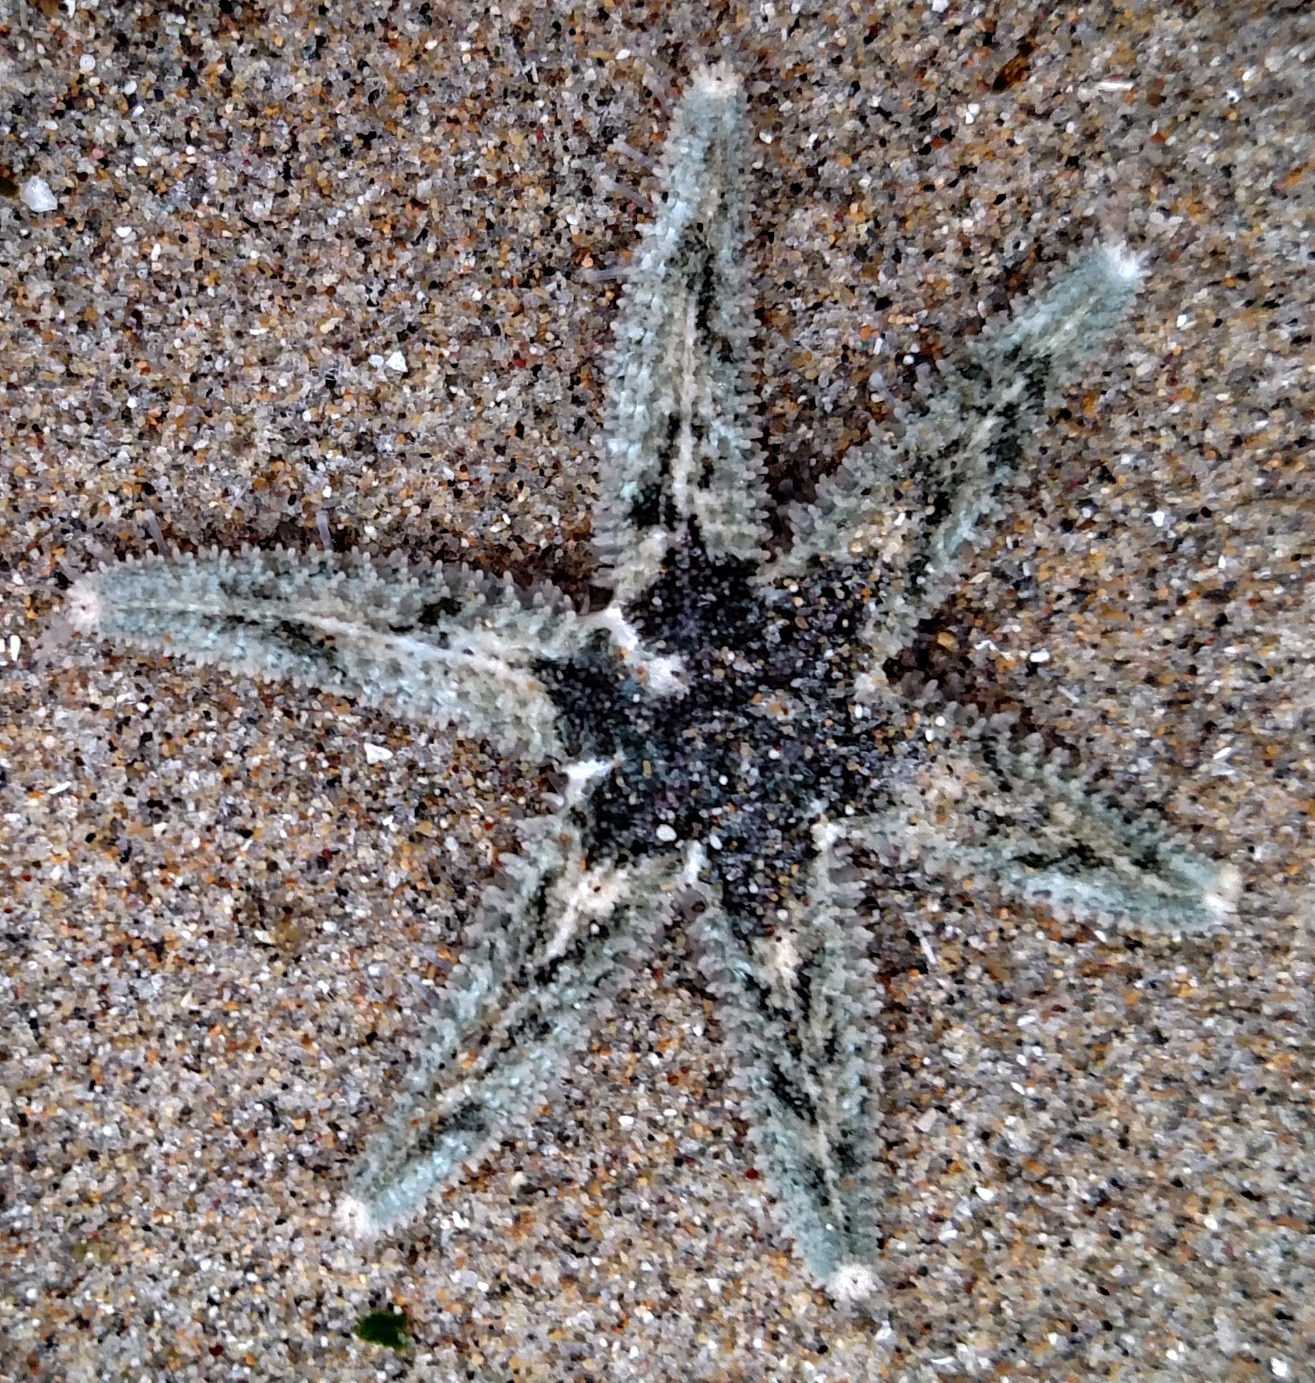 Six-Rayed Sea Star